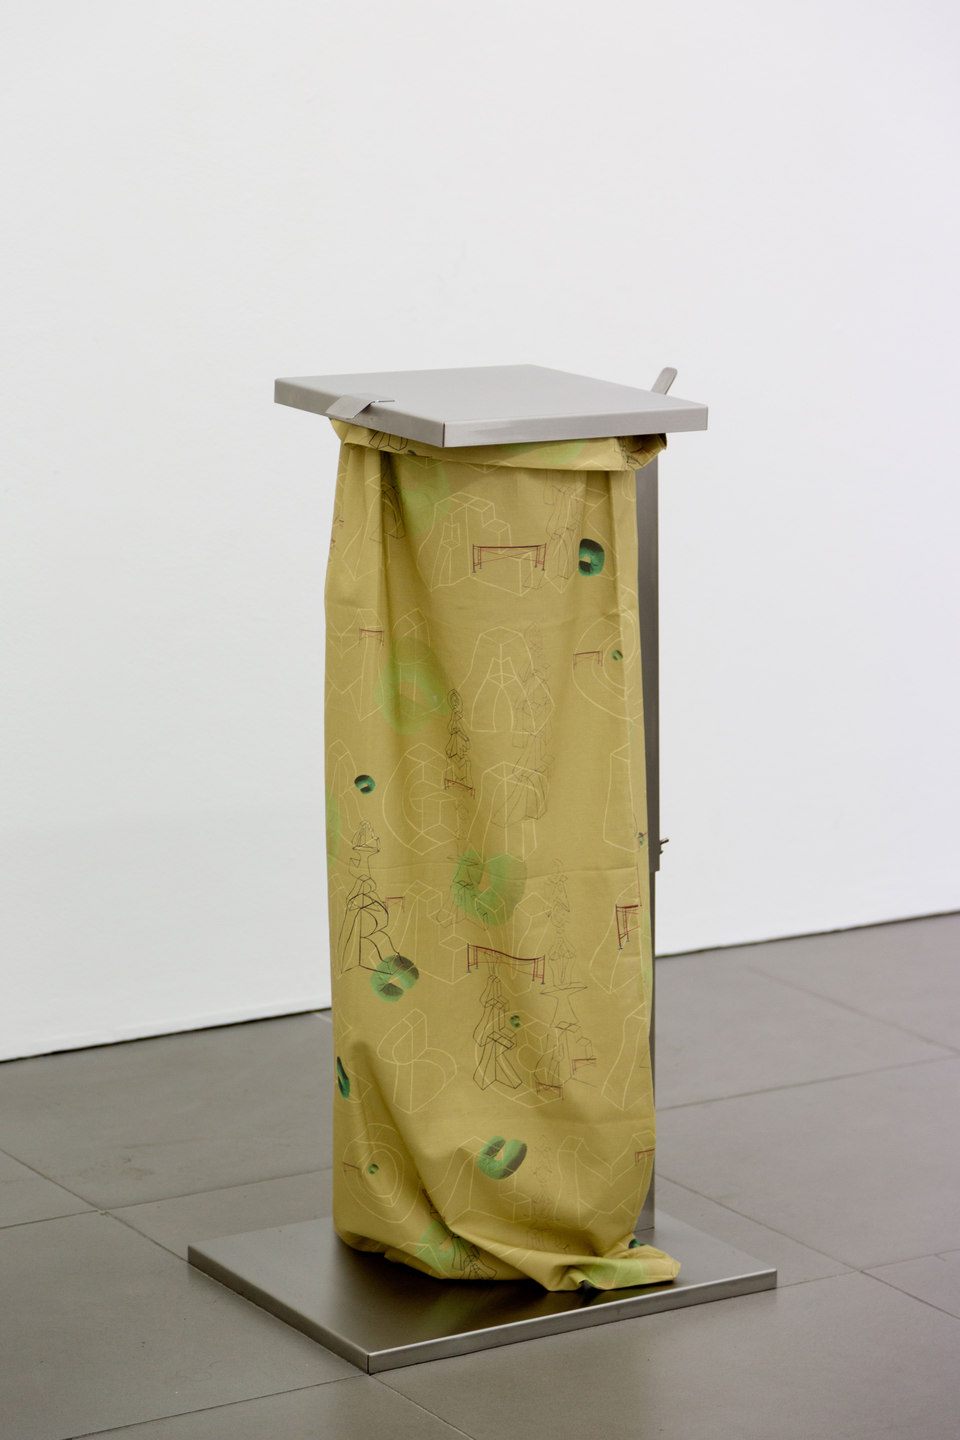 Marte Eknæs, Reboot Horizon, 'Disposal' (featuring Nicolau Verguerio), 2013, steel trash bag stand, custom printed fabric, Cell Project Space